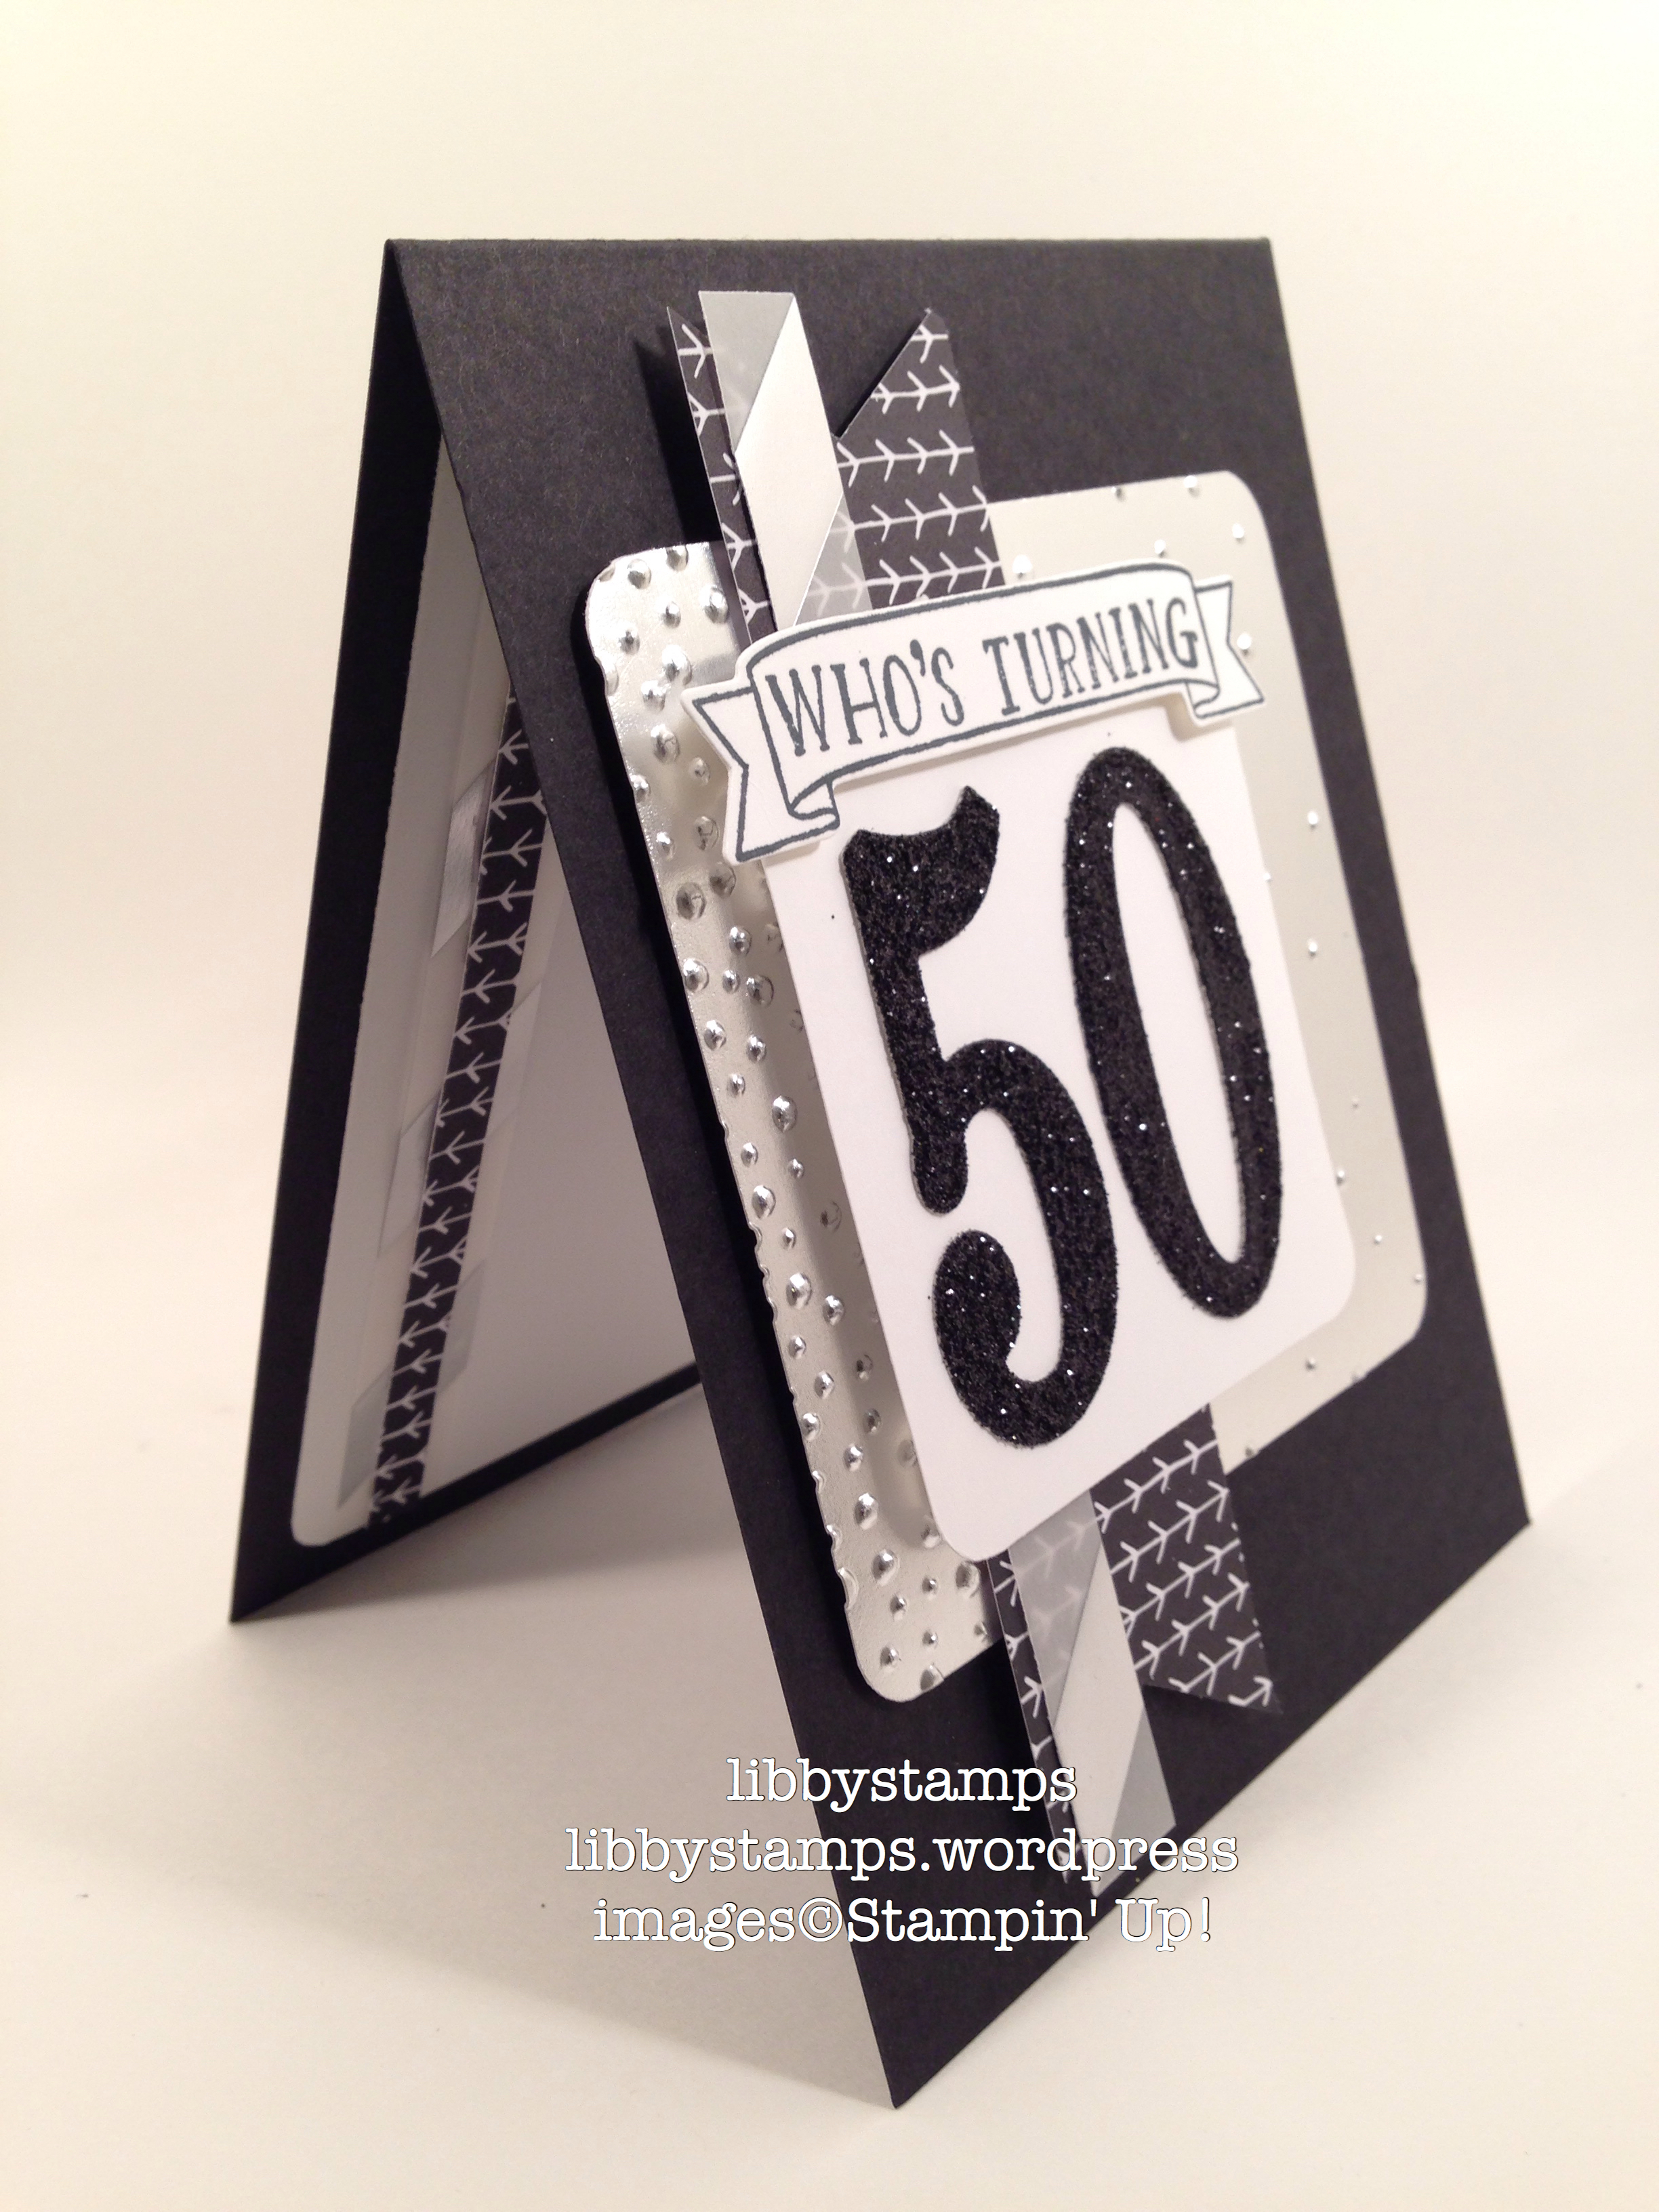 libbystamps, stampin' up, Number of Years, Large Numbers Framelits, It's My Party DSP, Silver Fancy Foil Vellum, Softy Falling Embossing Folder, CCMC401